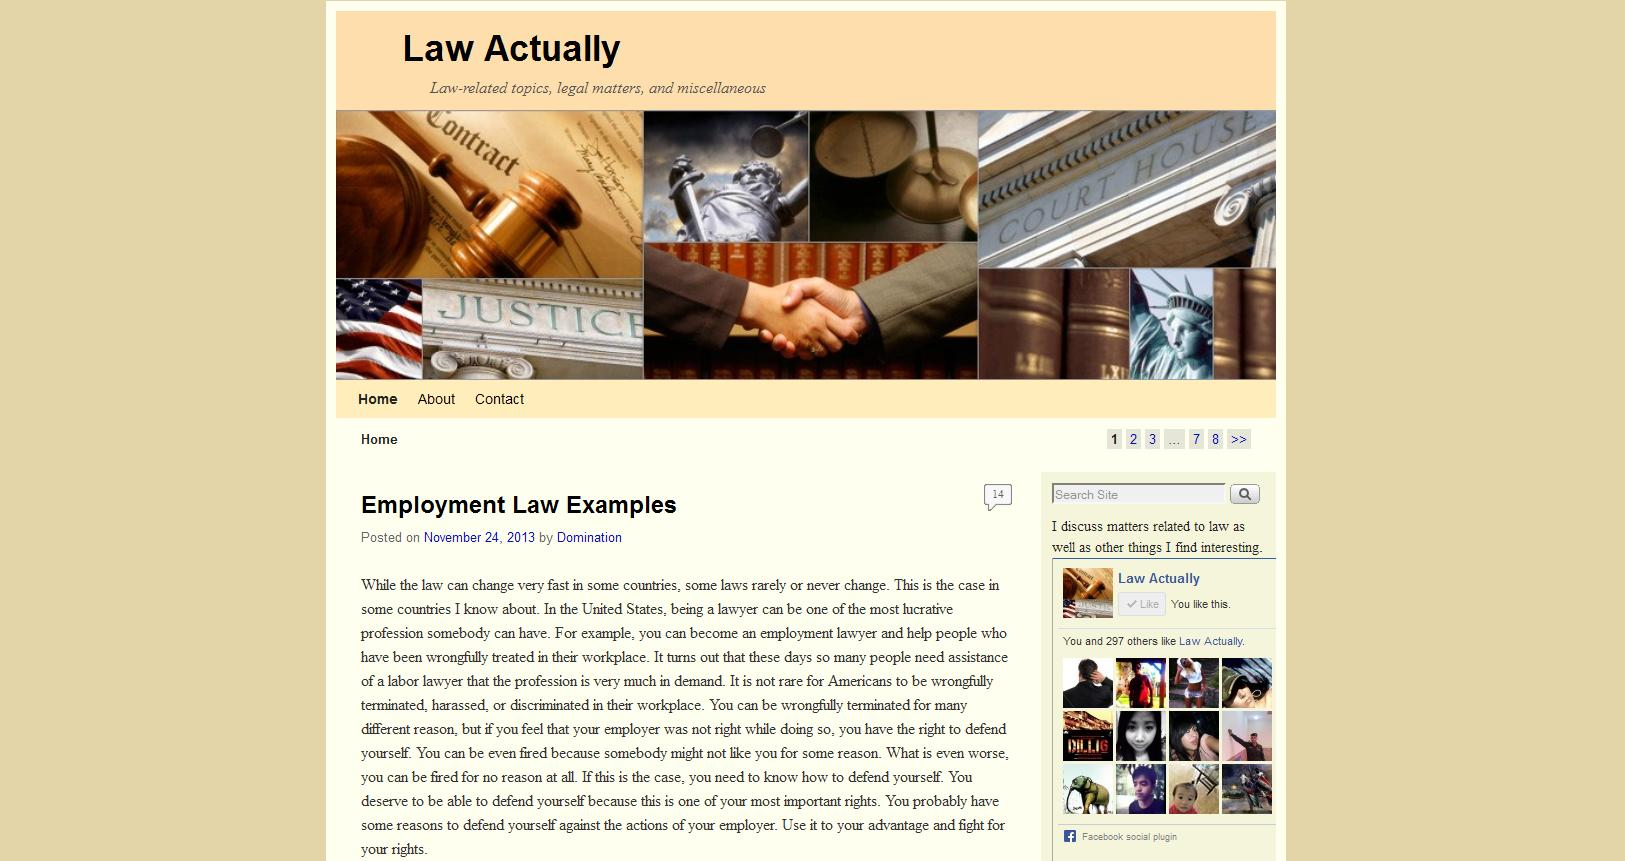 I will guest post your article to my PR3 DA30 LAW legal blog